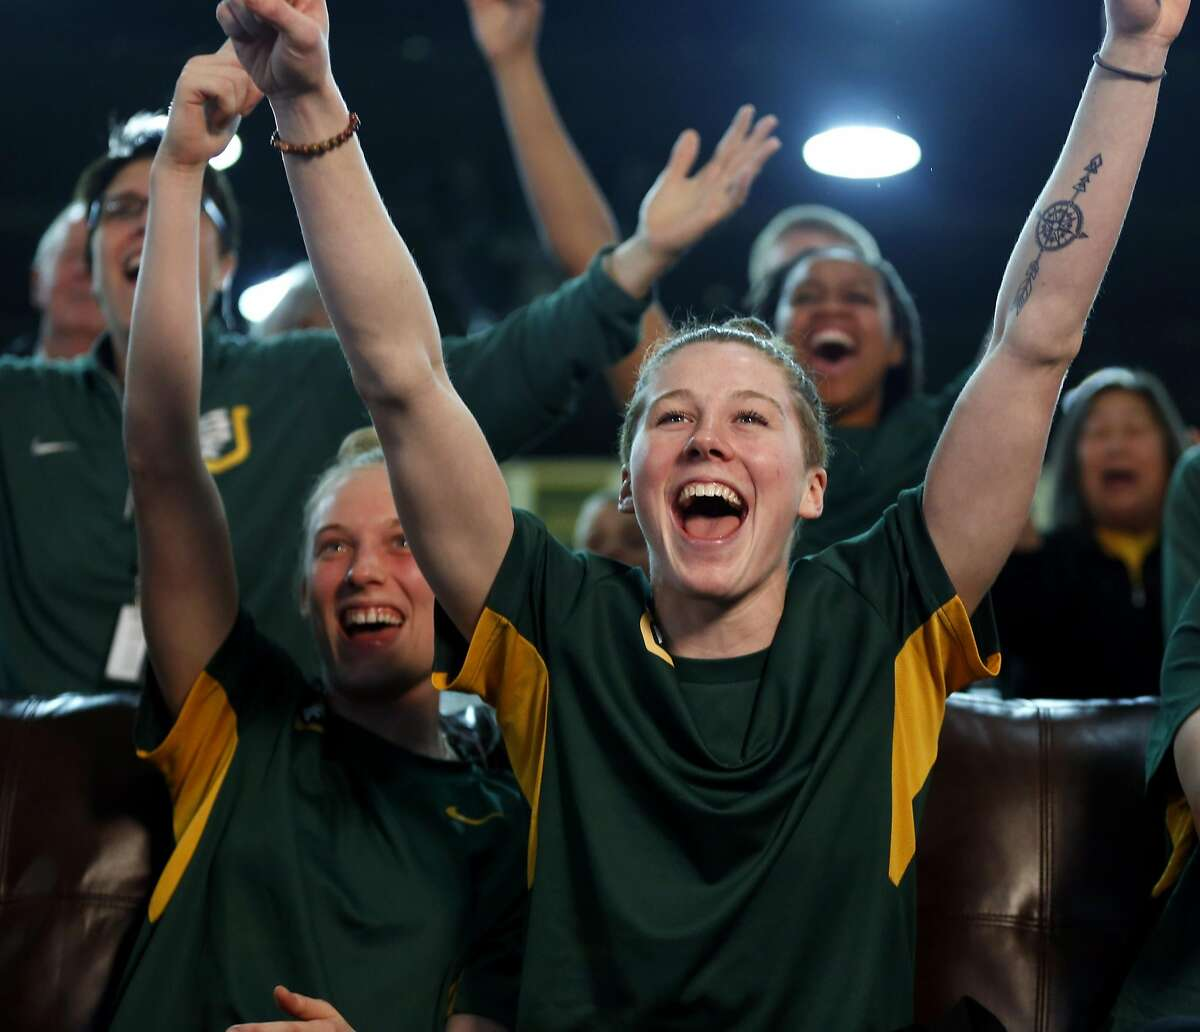 USF women's basketball player Rachel Howard cheers with her teammates after learning their seed in the NCAA Women's Basketball tournament while at a viewing party at War Memorial at the Sobrato Center at USF in San Francisco, California, on Monday, March 14, 2016.